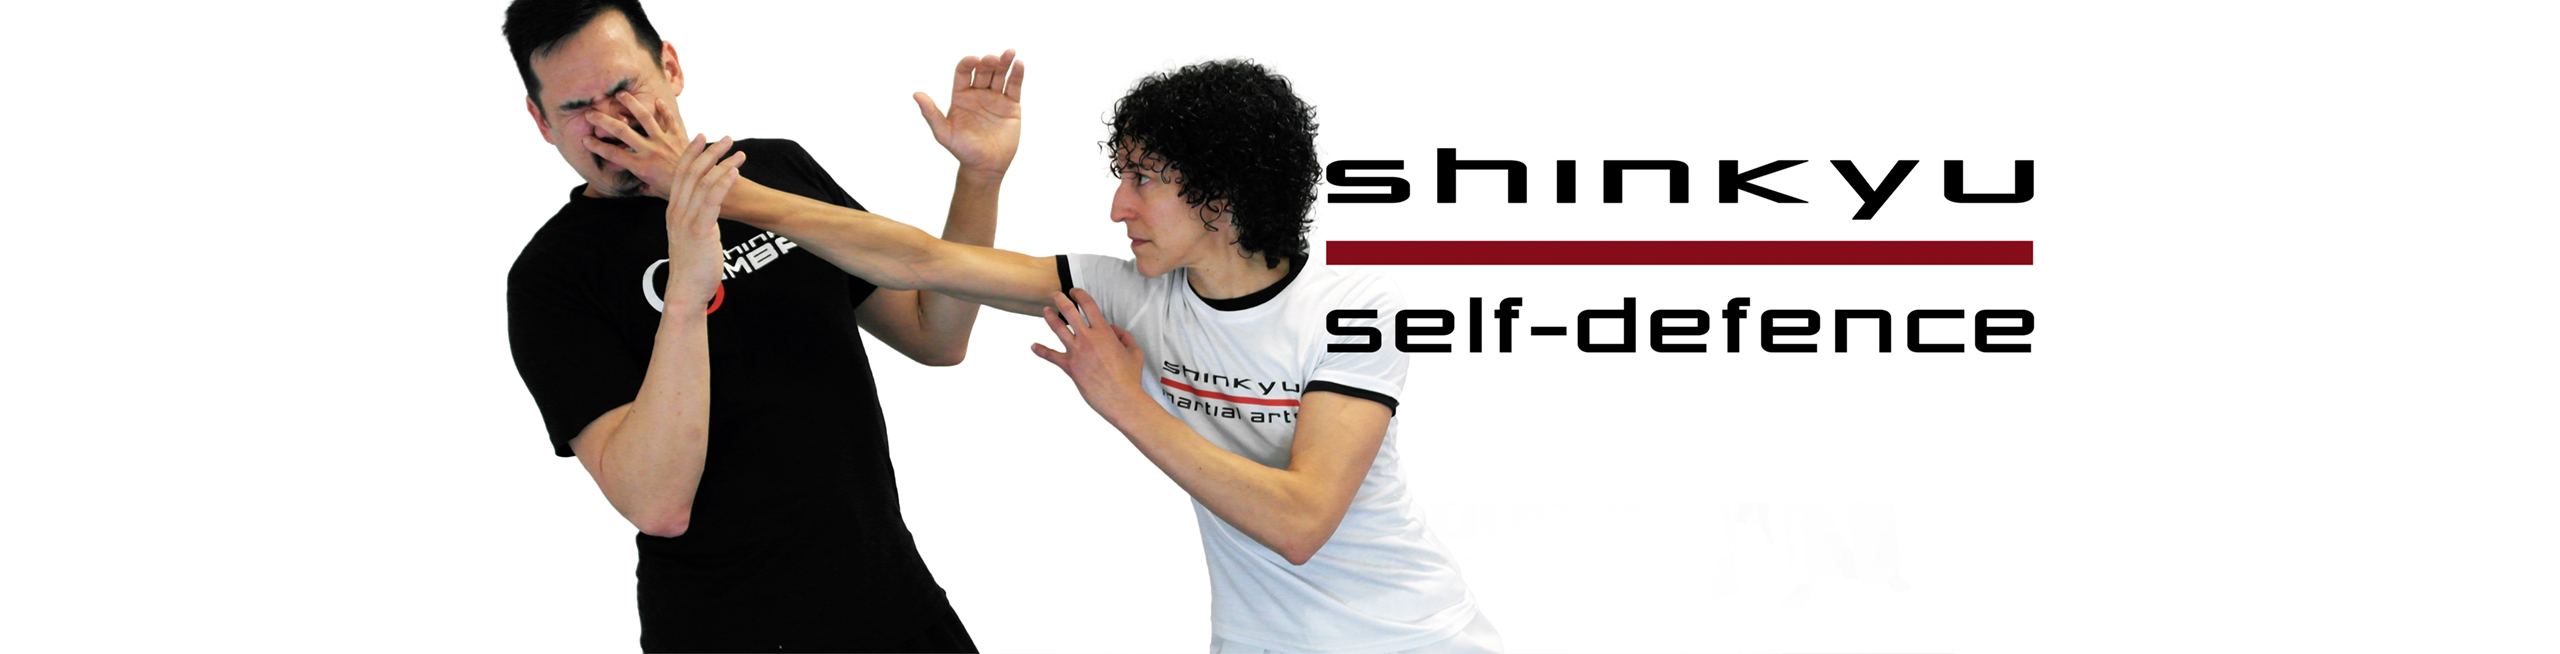 martial arts website self defence slider